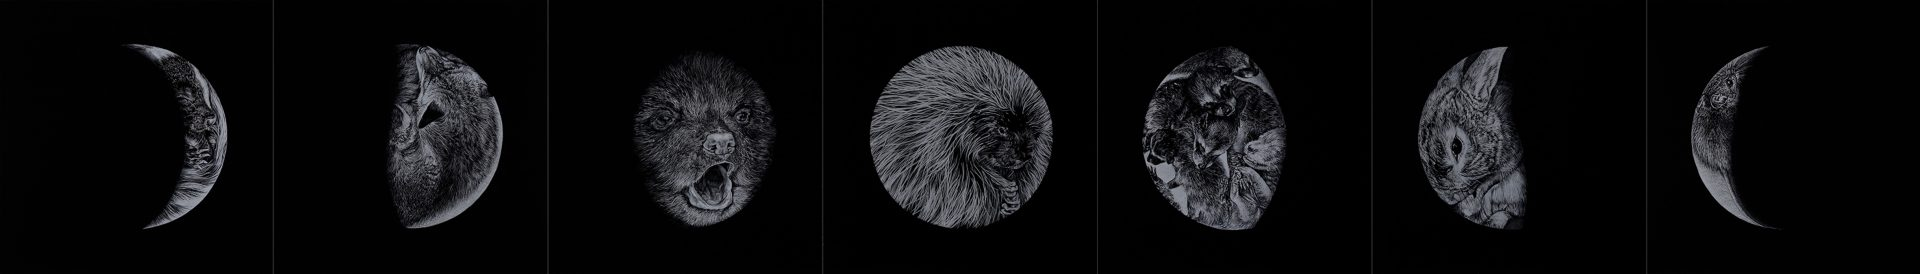 white charcoal on paper 38.1 x 38.1 cm (each) Thunder Bay Art Gallery Collection, Purchased in part through the support of the Elizabeth L. Gordon Art Program, a program of the Walter and Duncan Gordon Foundation and administered by the Ontario Arts Foundation, 2017